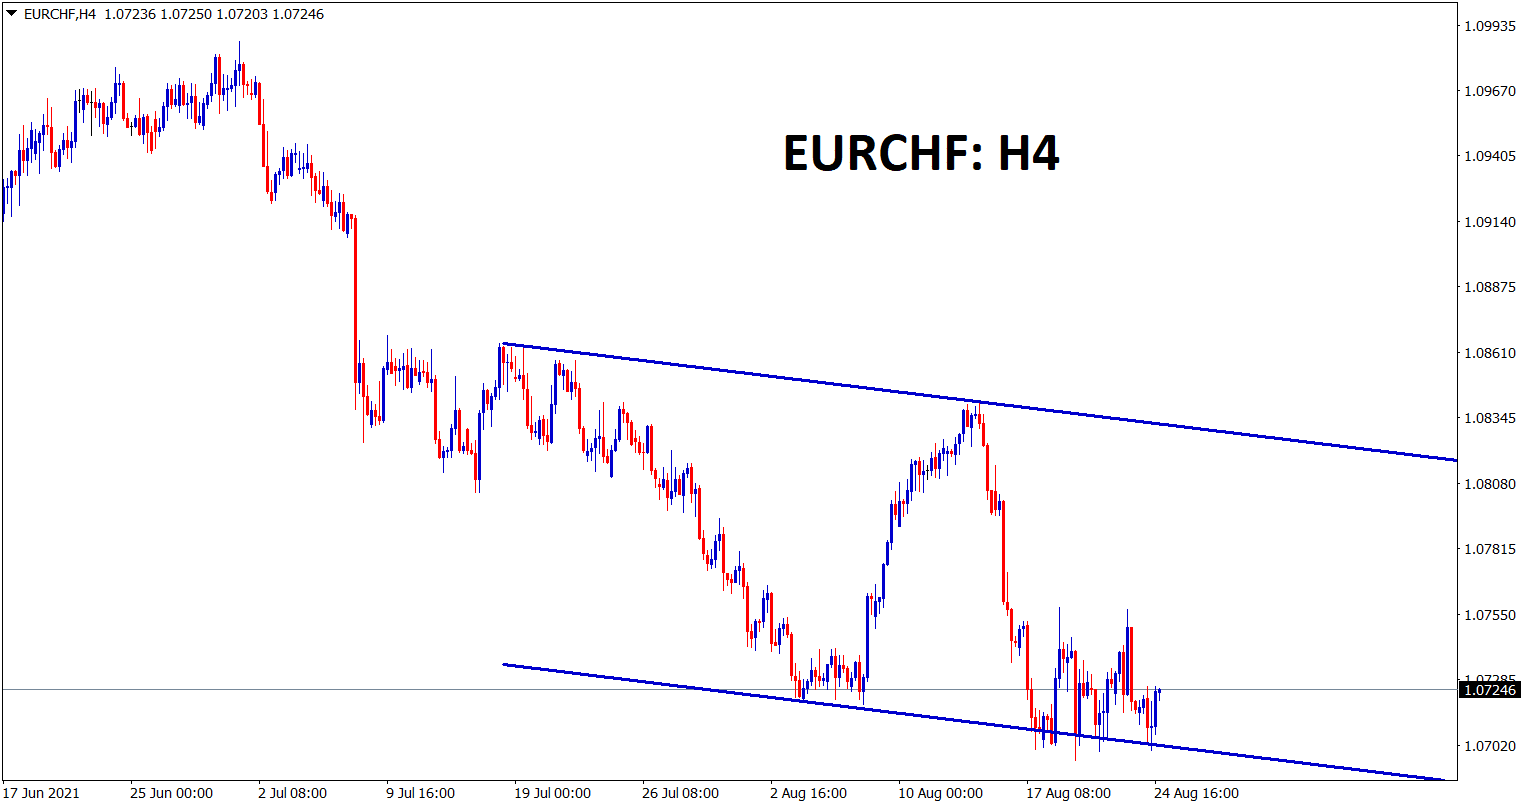 EURCHF is ranging between the support and resistance levels now market is consolidating at the support area